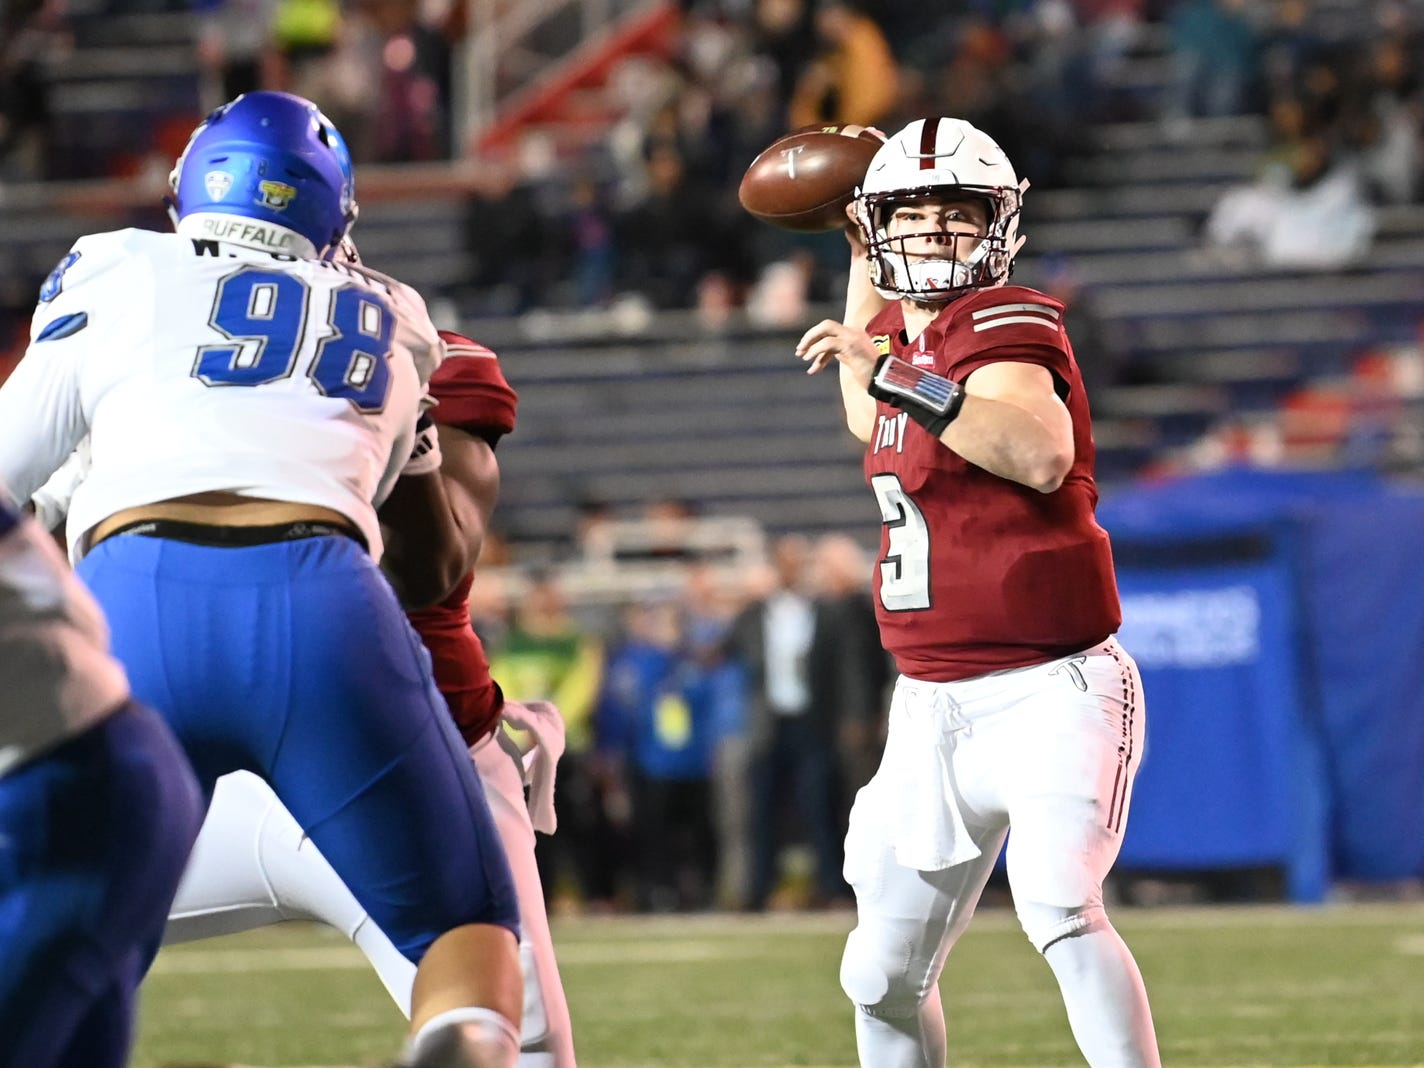 Troy Trojans quarterback Sawyer Smith (3) drops back to pass against Buffalo during the Dollar General Bowl held at Ladd-Peebles Stadium in Mobile on Saturday, Dec. 22, 2018.